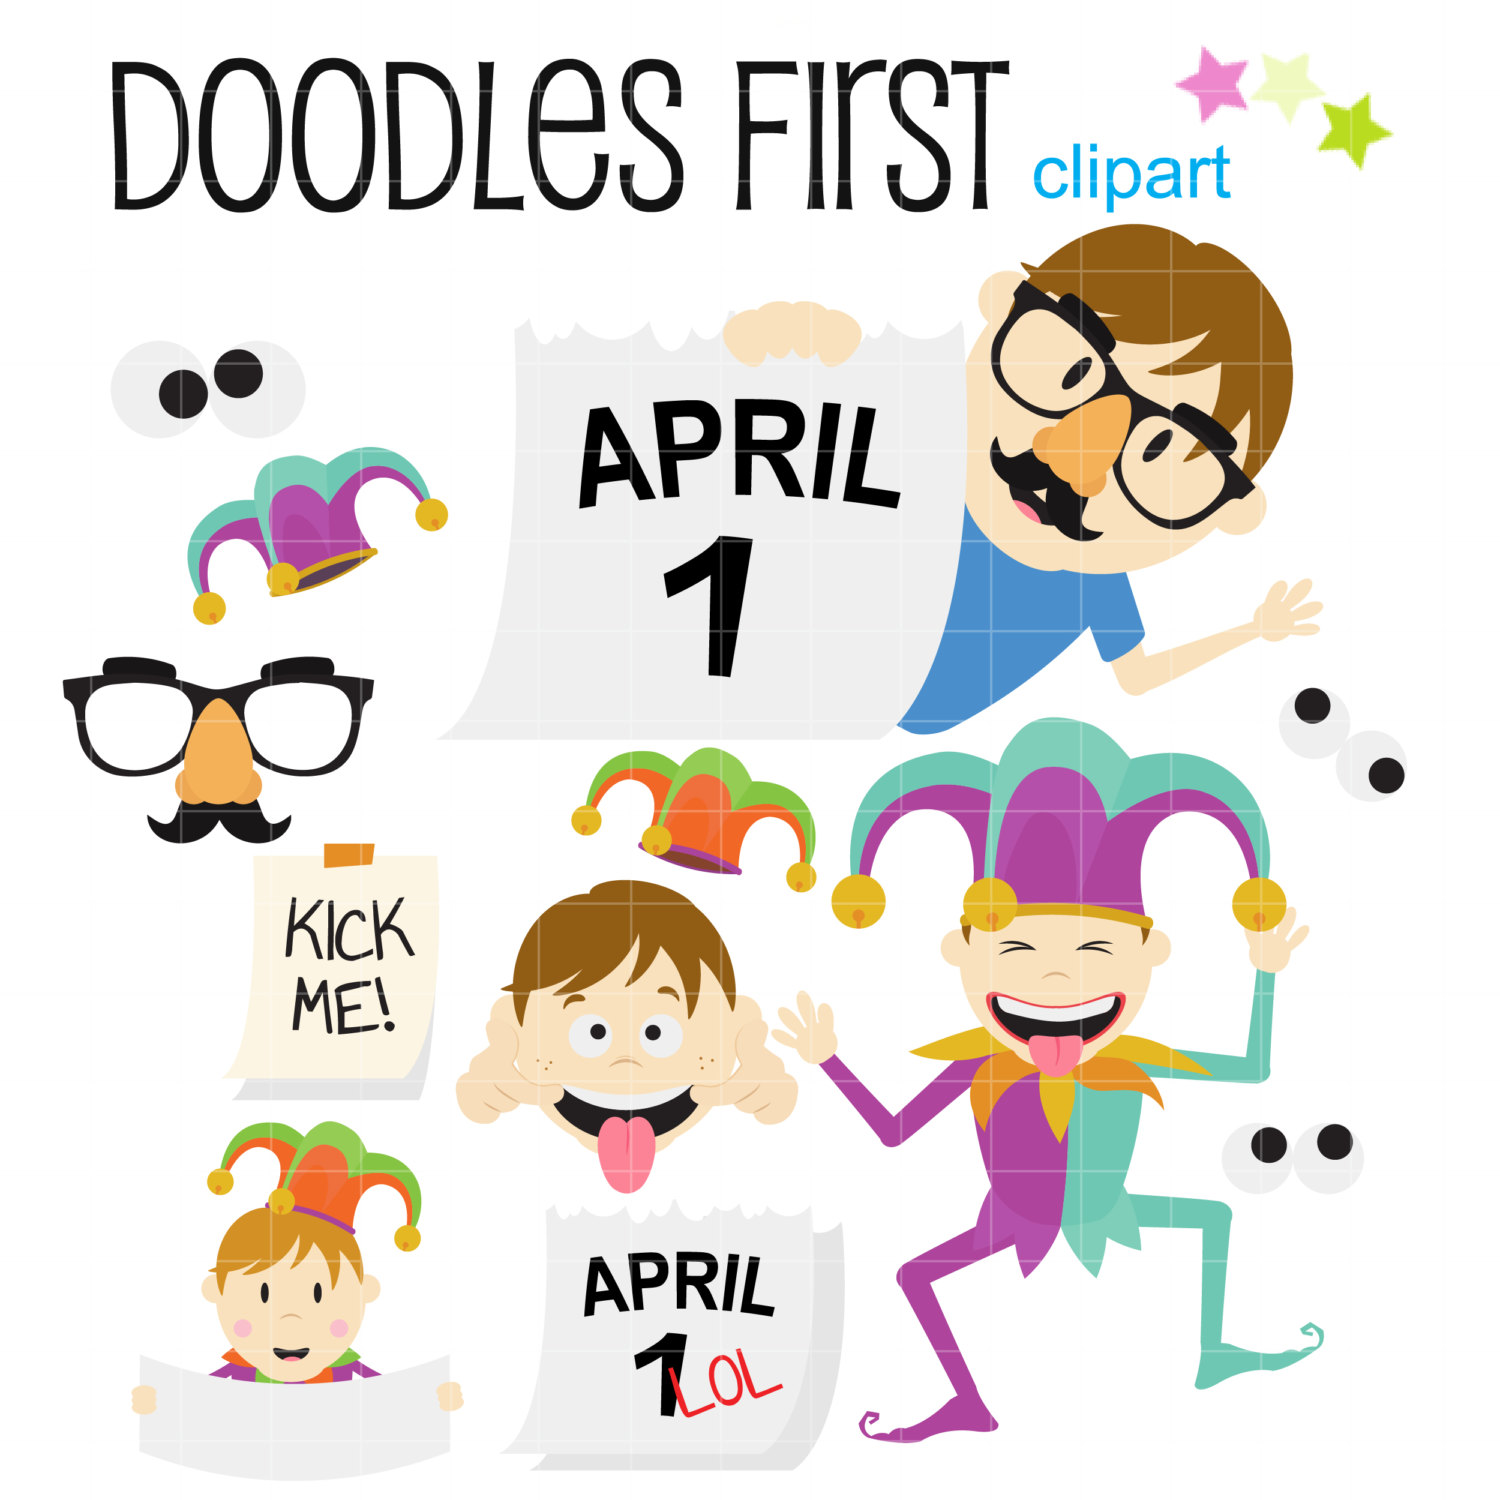 Silly fool s day. April clipart april fools